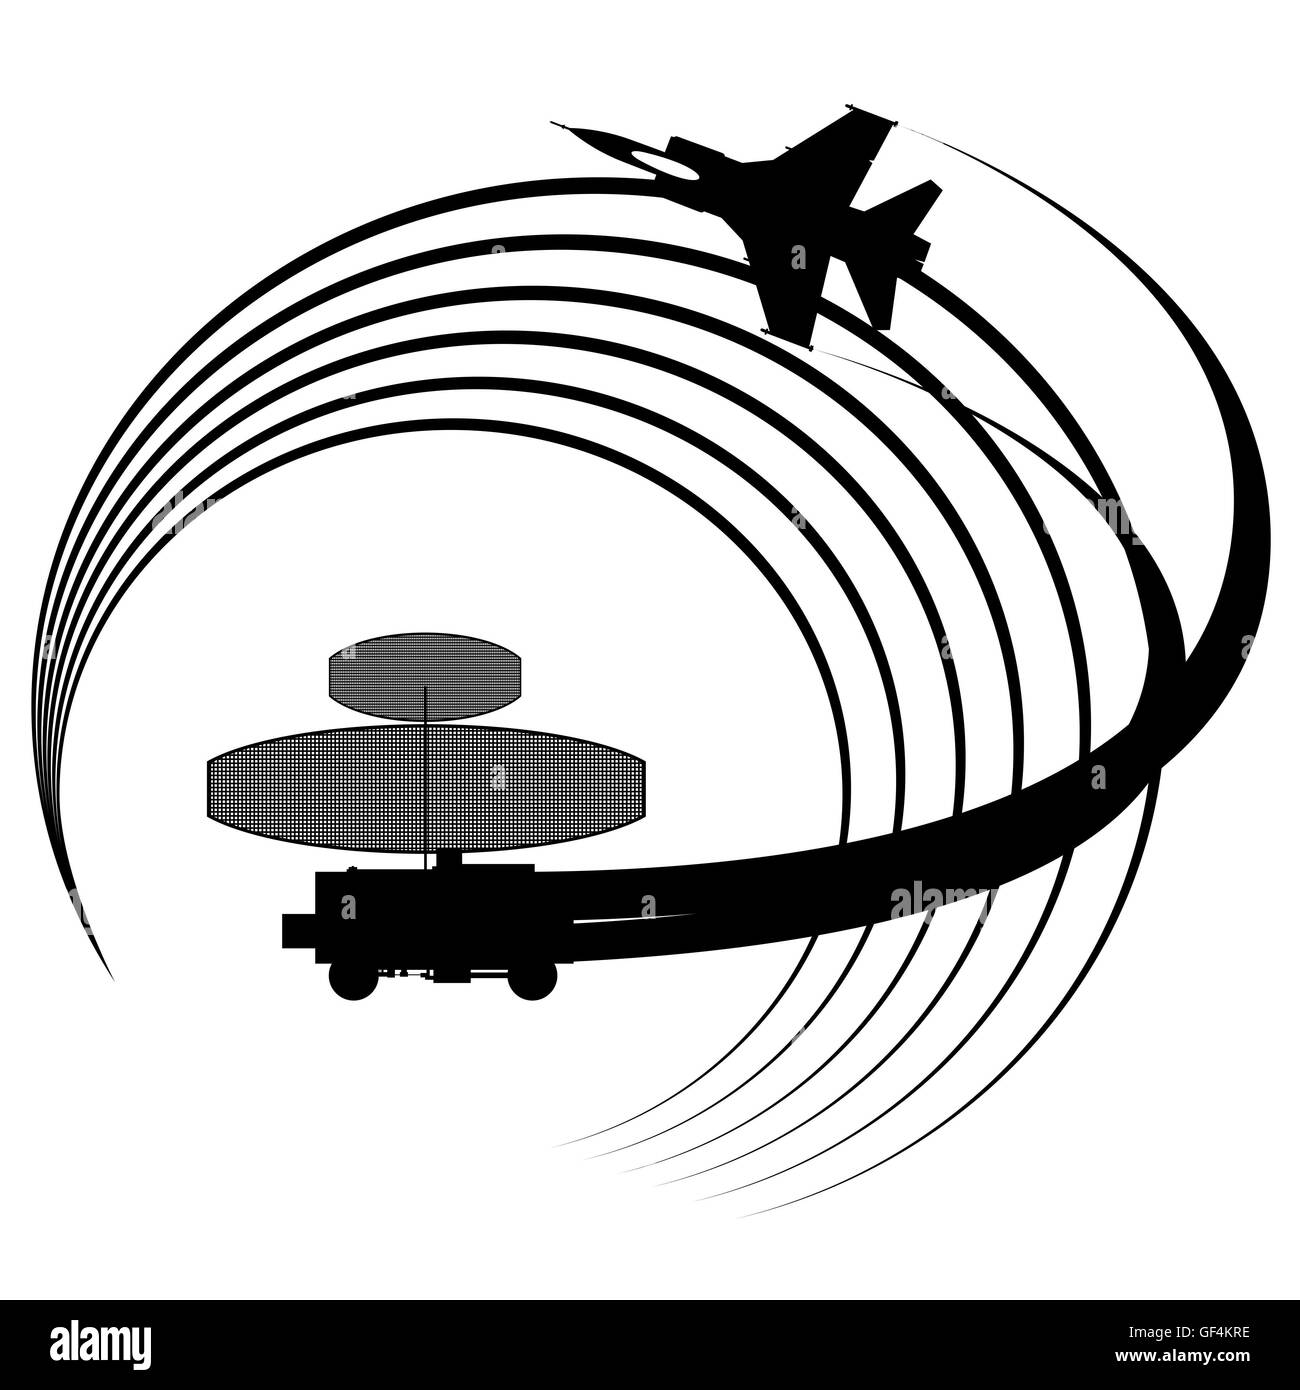 Contour flying military aircraft detected radar. The illustration on white background. - Stock Image